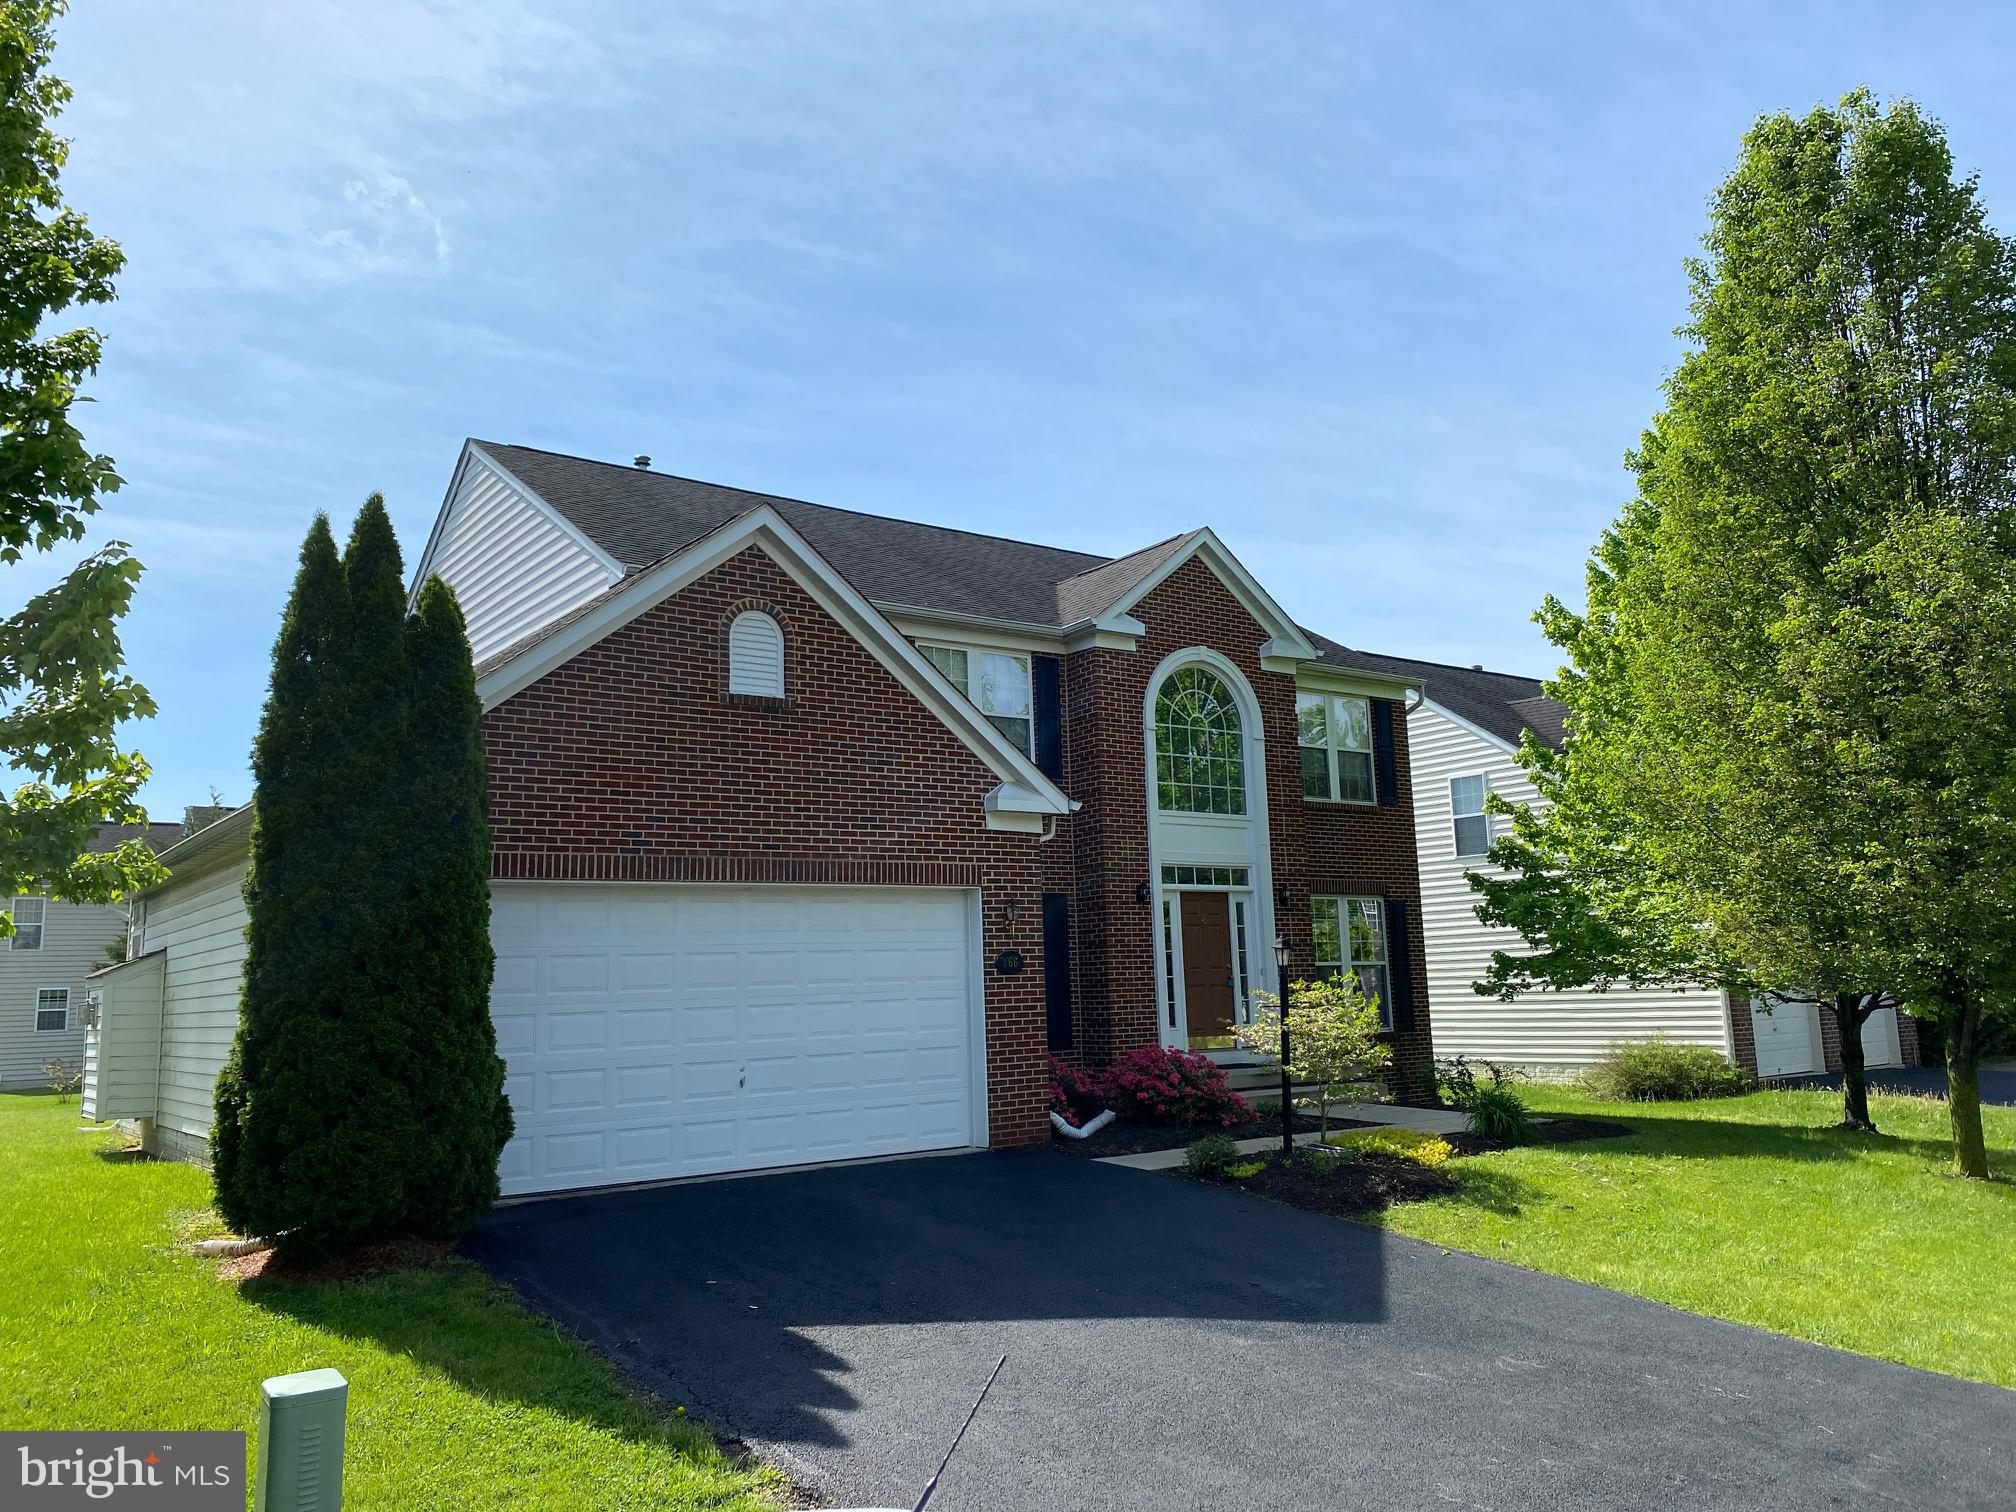 Welcome to The Village of Washington Trail West.  This home is loaded with many extras including but not limited to:  High speed wire package, ceramic tiled owner's bath, 9 foot ceilings on the main level, gas fireplace and mantel in living room off the kitchen, chair railing, tray ceilings, crown molding, hardwood foyer,  3rd bath basement rough in, and rear deck for entertaining.  Ready for immediate occupancy May 7.  Note:  Berkeley County Property, Schools, & 25430 address.  Class III Tax.  Tenant occupied through April 30.